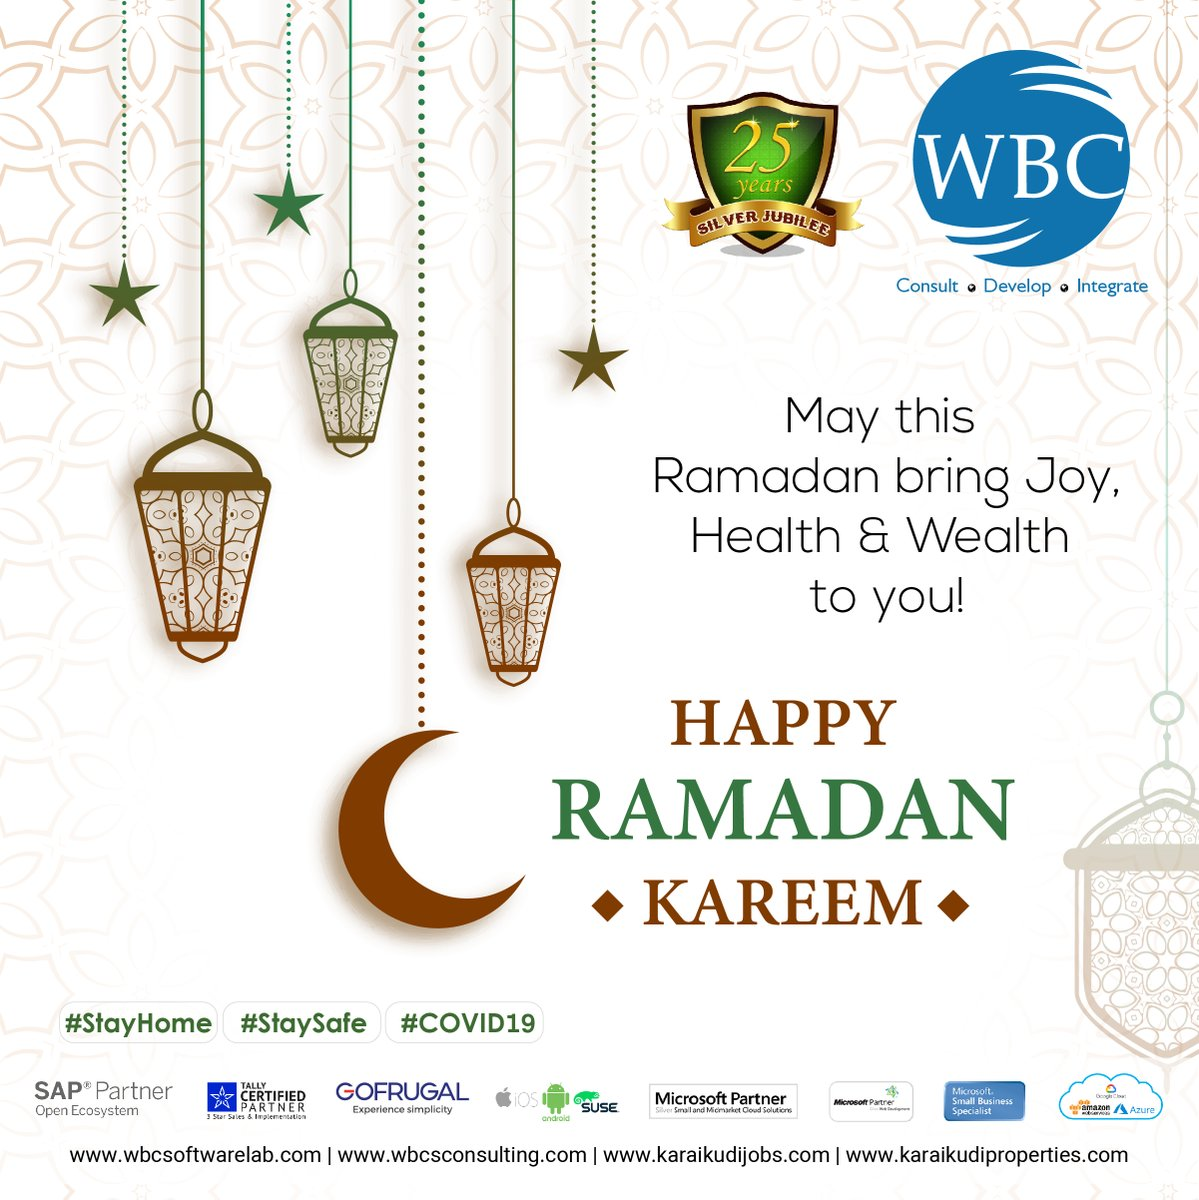 Dear all, WBC_Software_Lab Wishing you a Happy Ramadan 2020!!! May this #Ramadan be as #bright as ever. #Ramadan bring joy, #health and #wealth to all of you.  Visit website: https://www.wbcsoftwarelab.com , https://www.wbcsconsulting.com pic.twitter.com/RumS9I2zB9